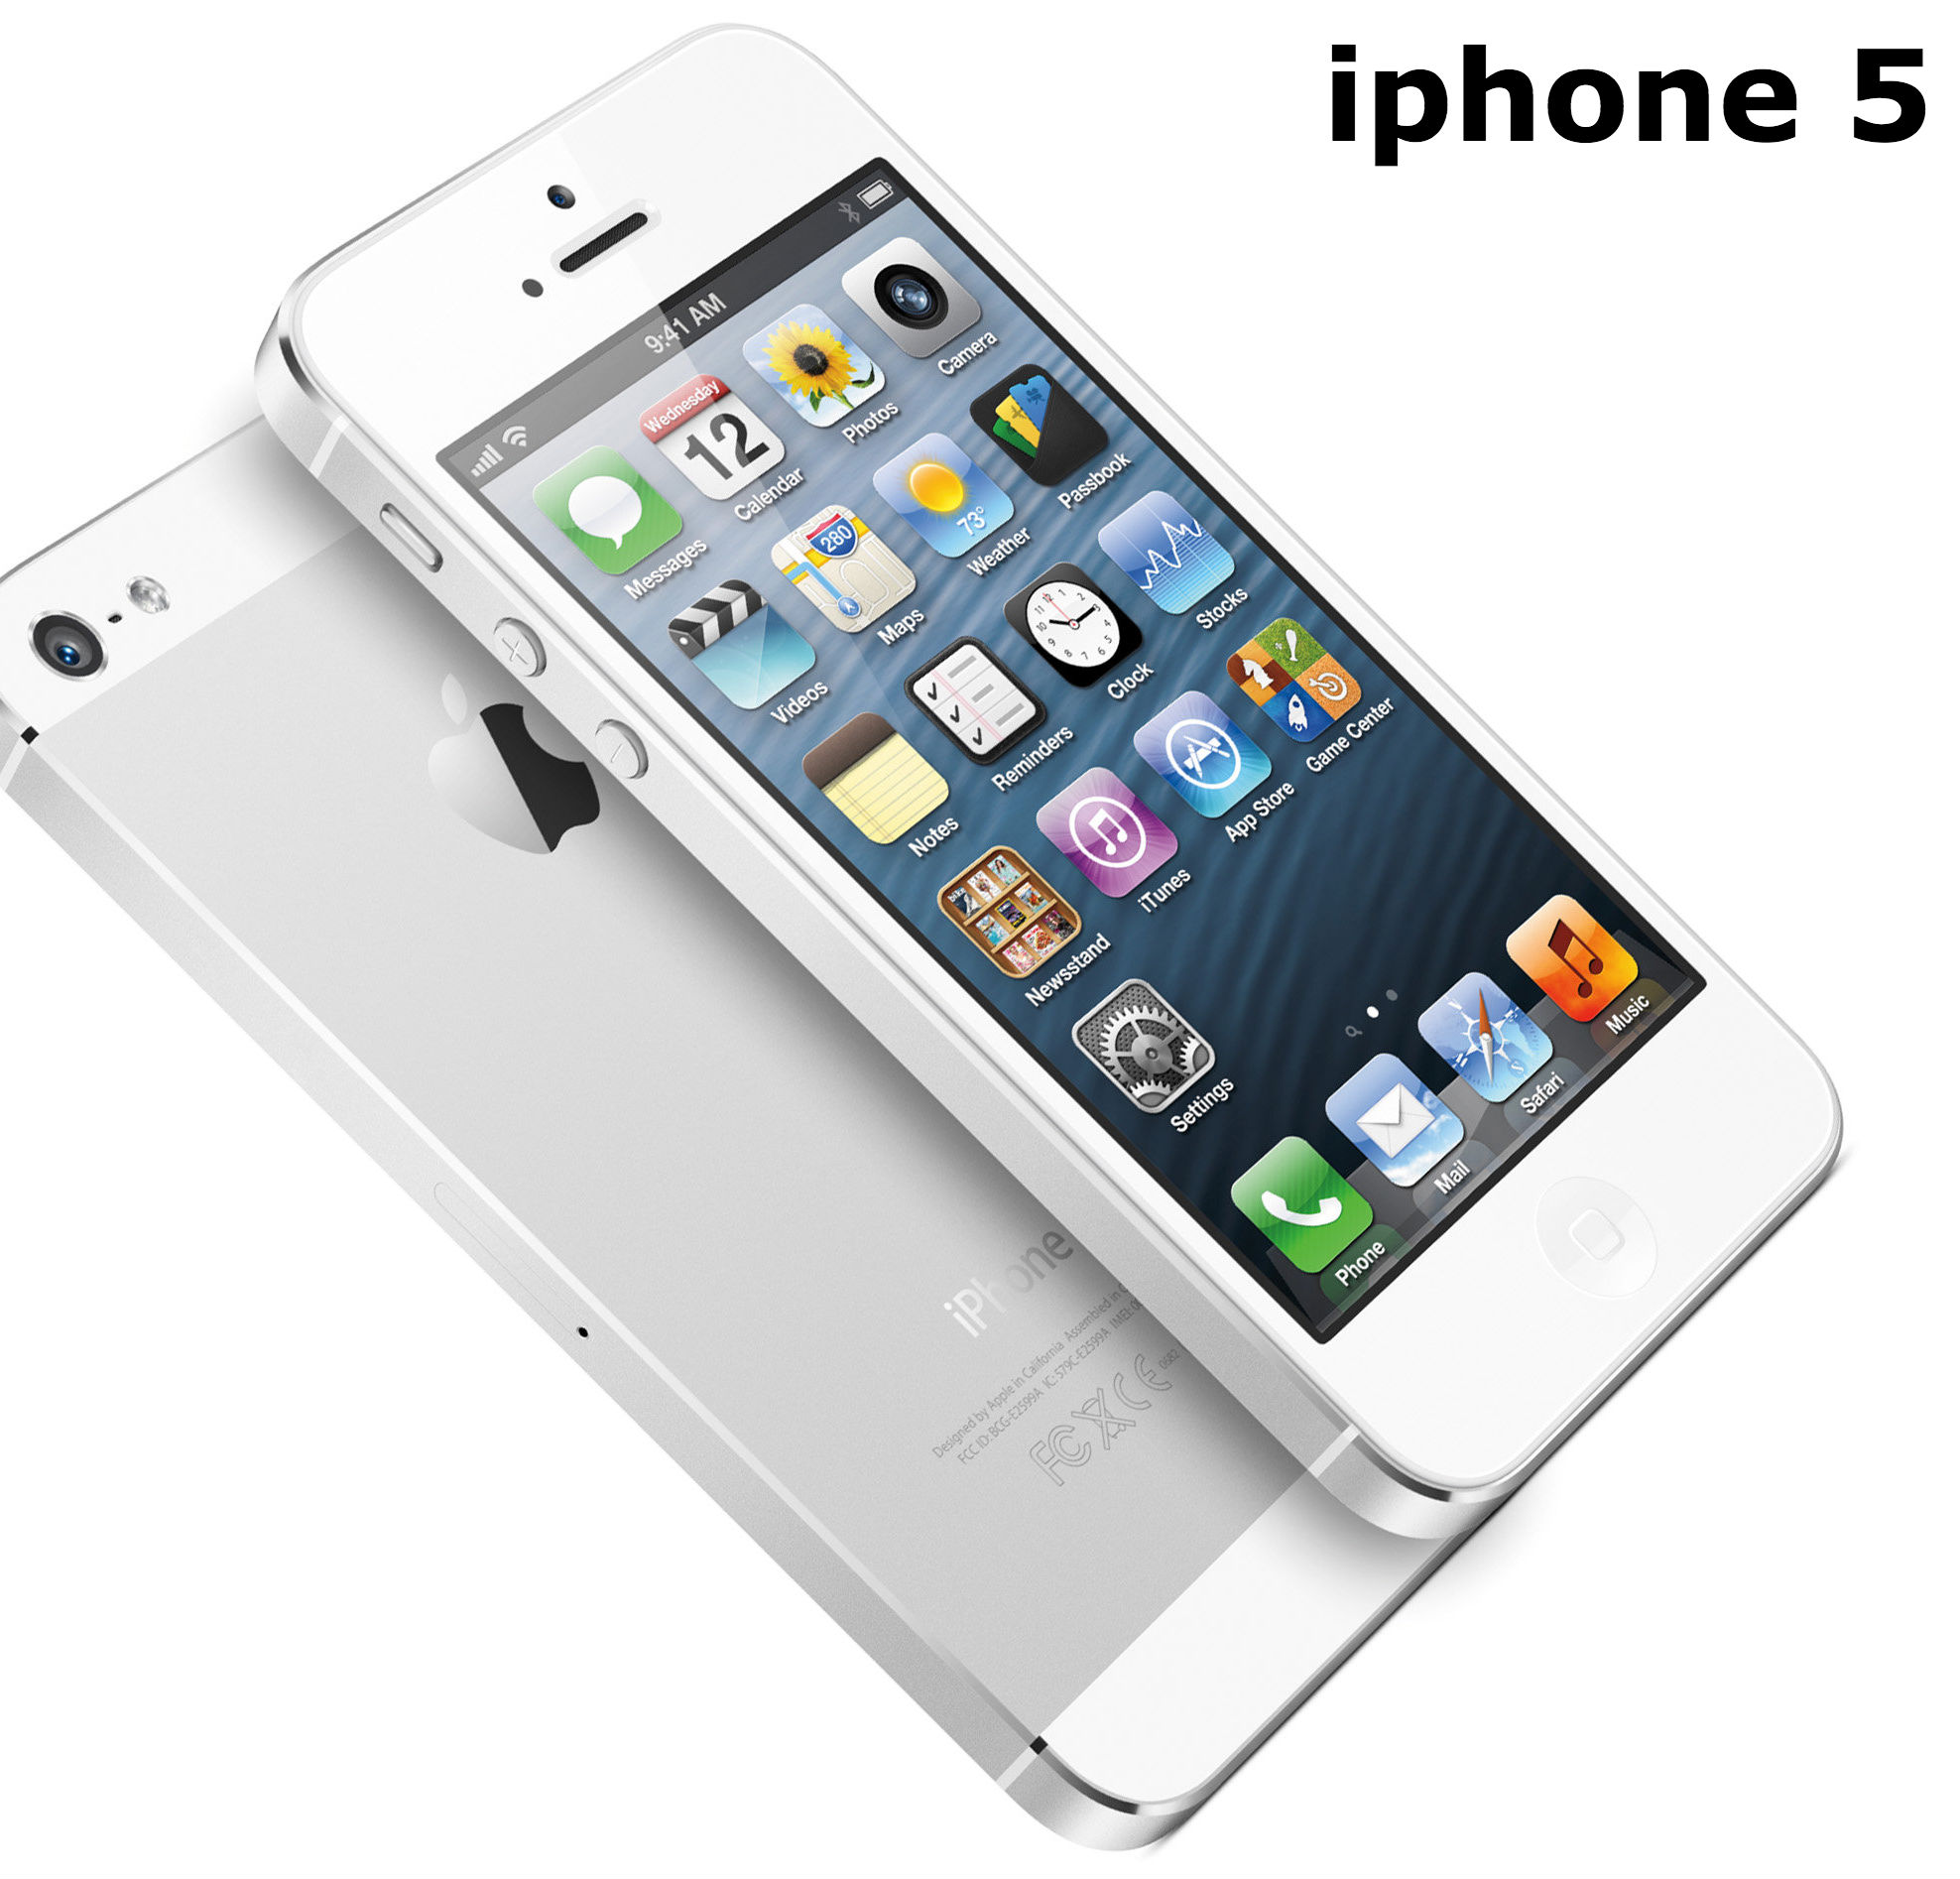 How to hard reset iphone 5 5s 5c?